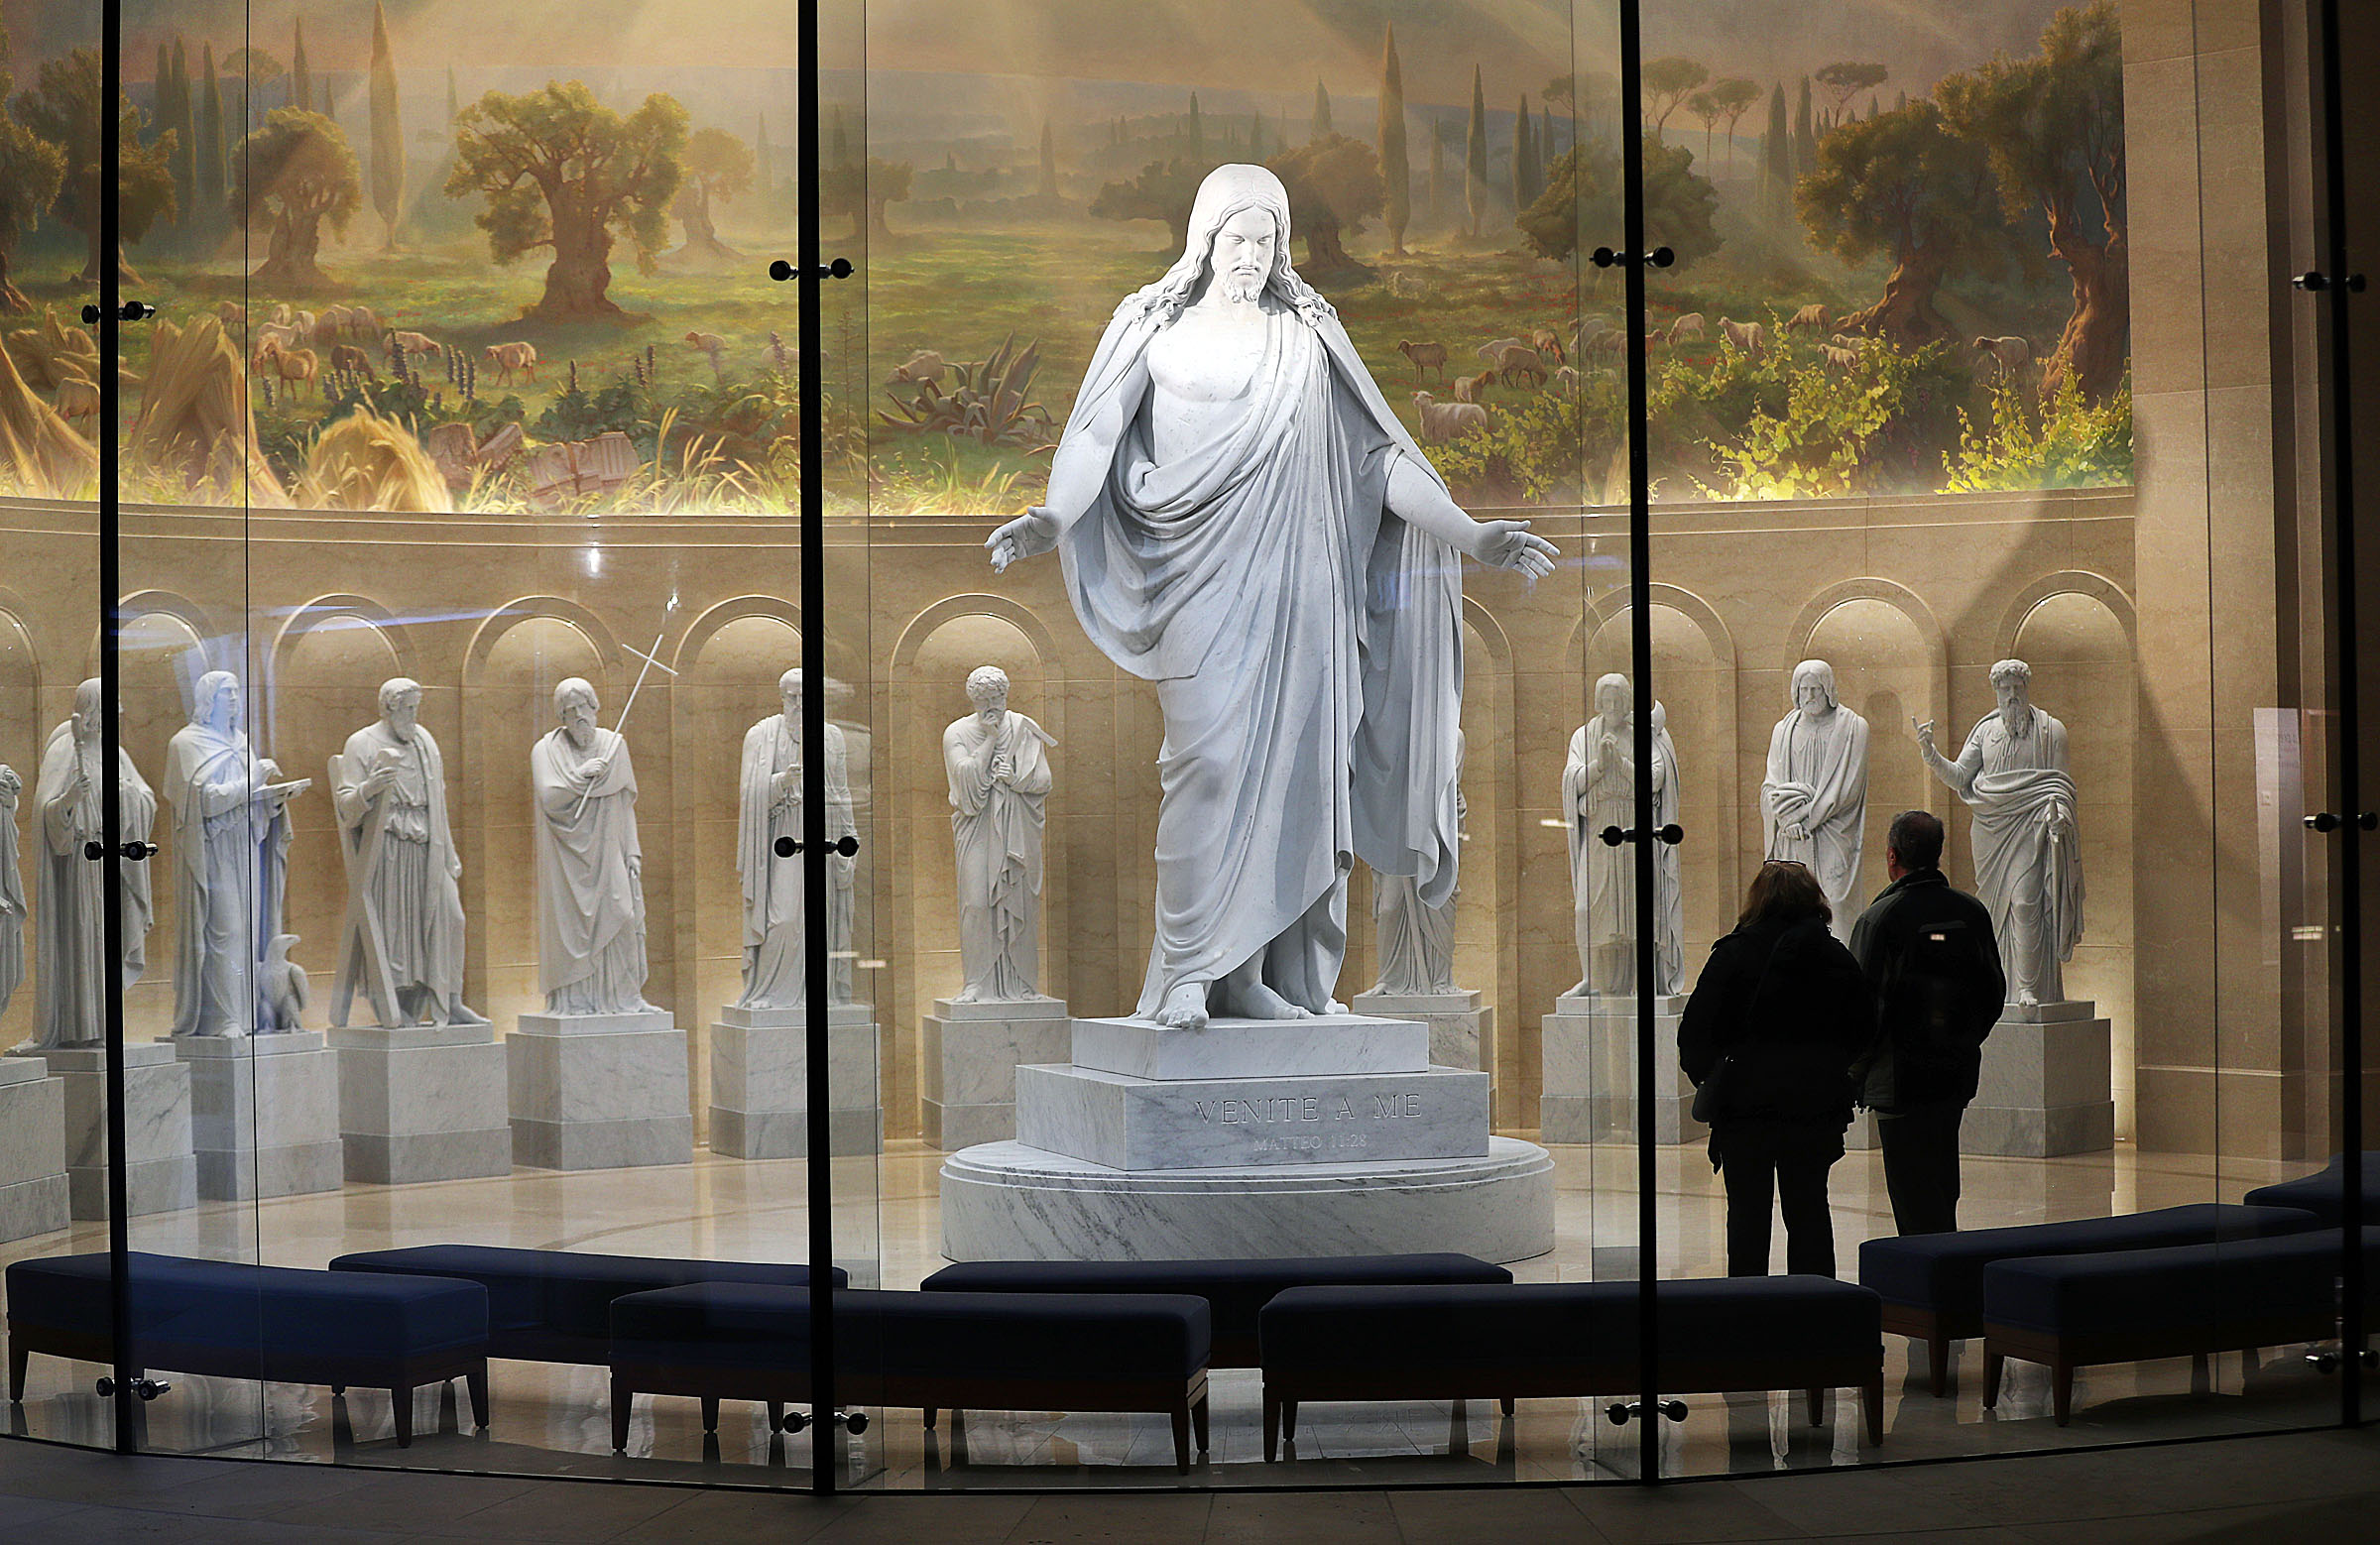 Volunteers Vanna and Benedicto Parisi look at statues of Christ and the Apostles in the Rome Temple Visitors' Center of The Church of Jesus Christ of Latter-day Saints in Rome, Italy, on Sunday, Jan. 13, 2019.